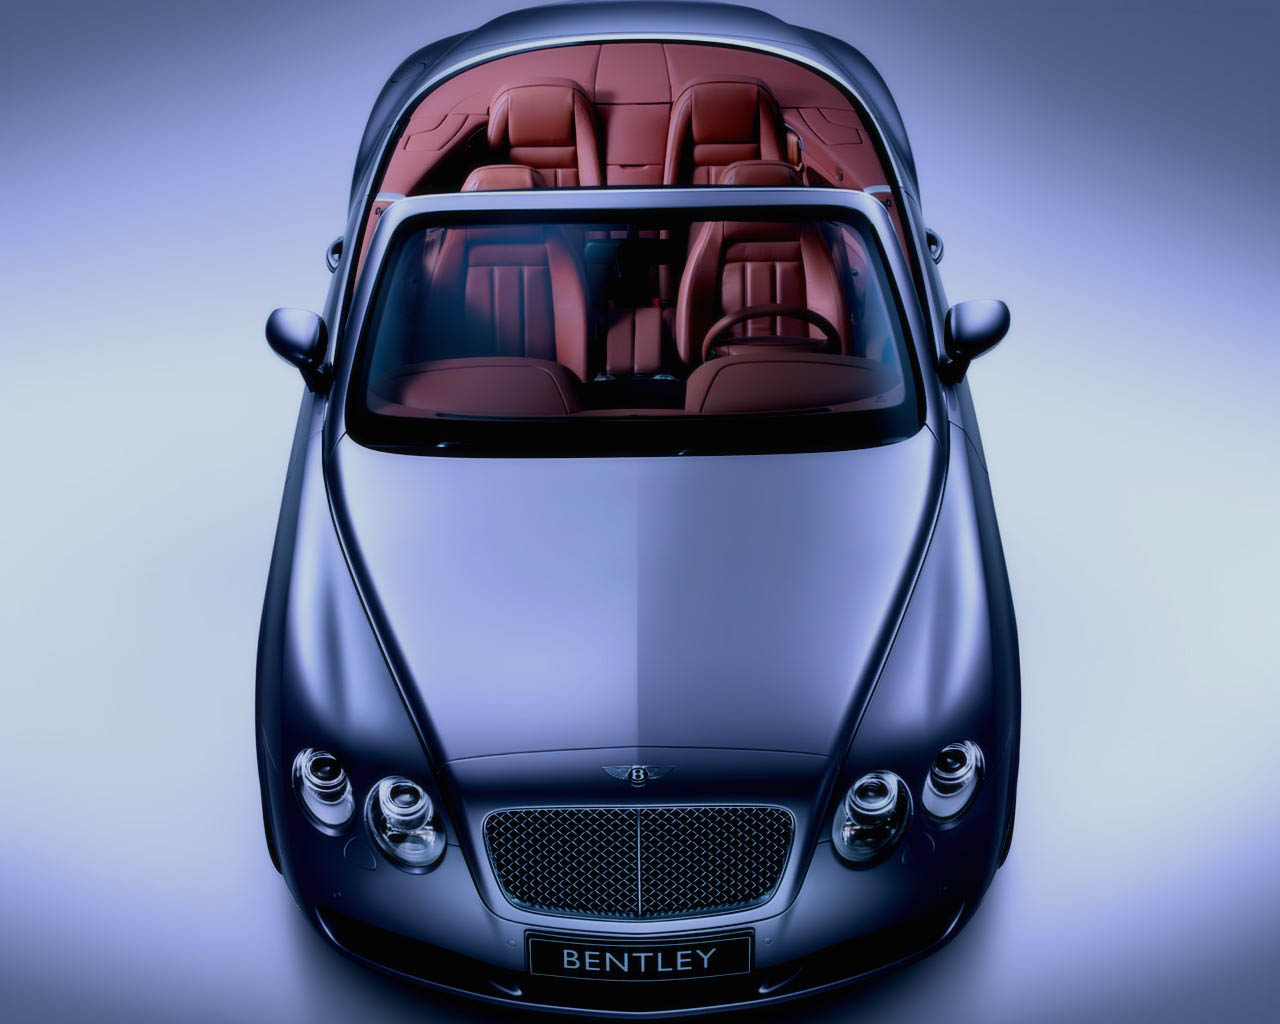 Exterieur_Bentley-Continental-GT_23